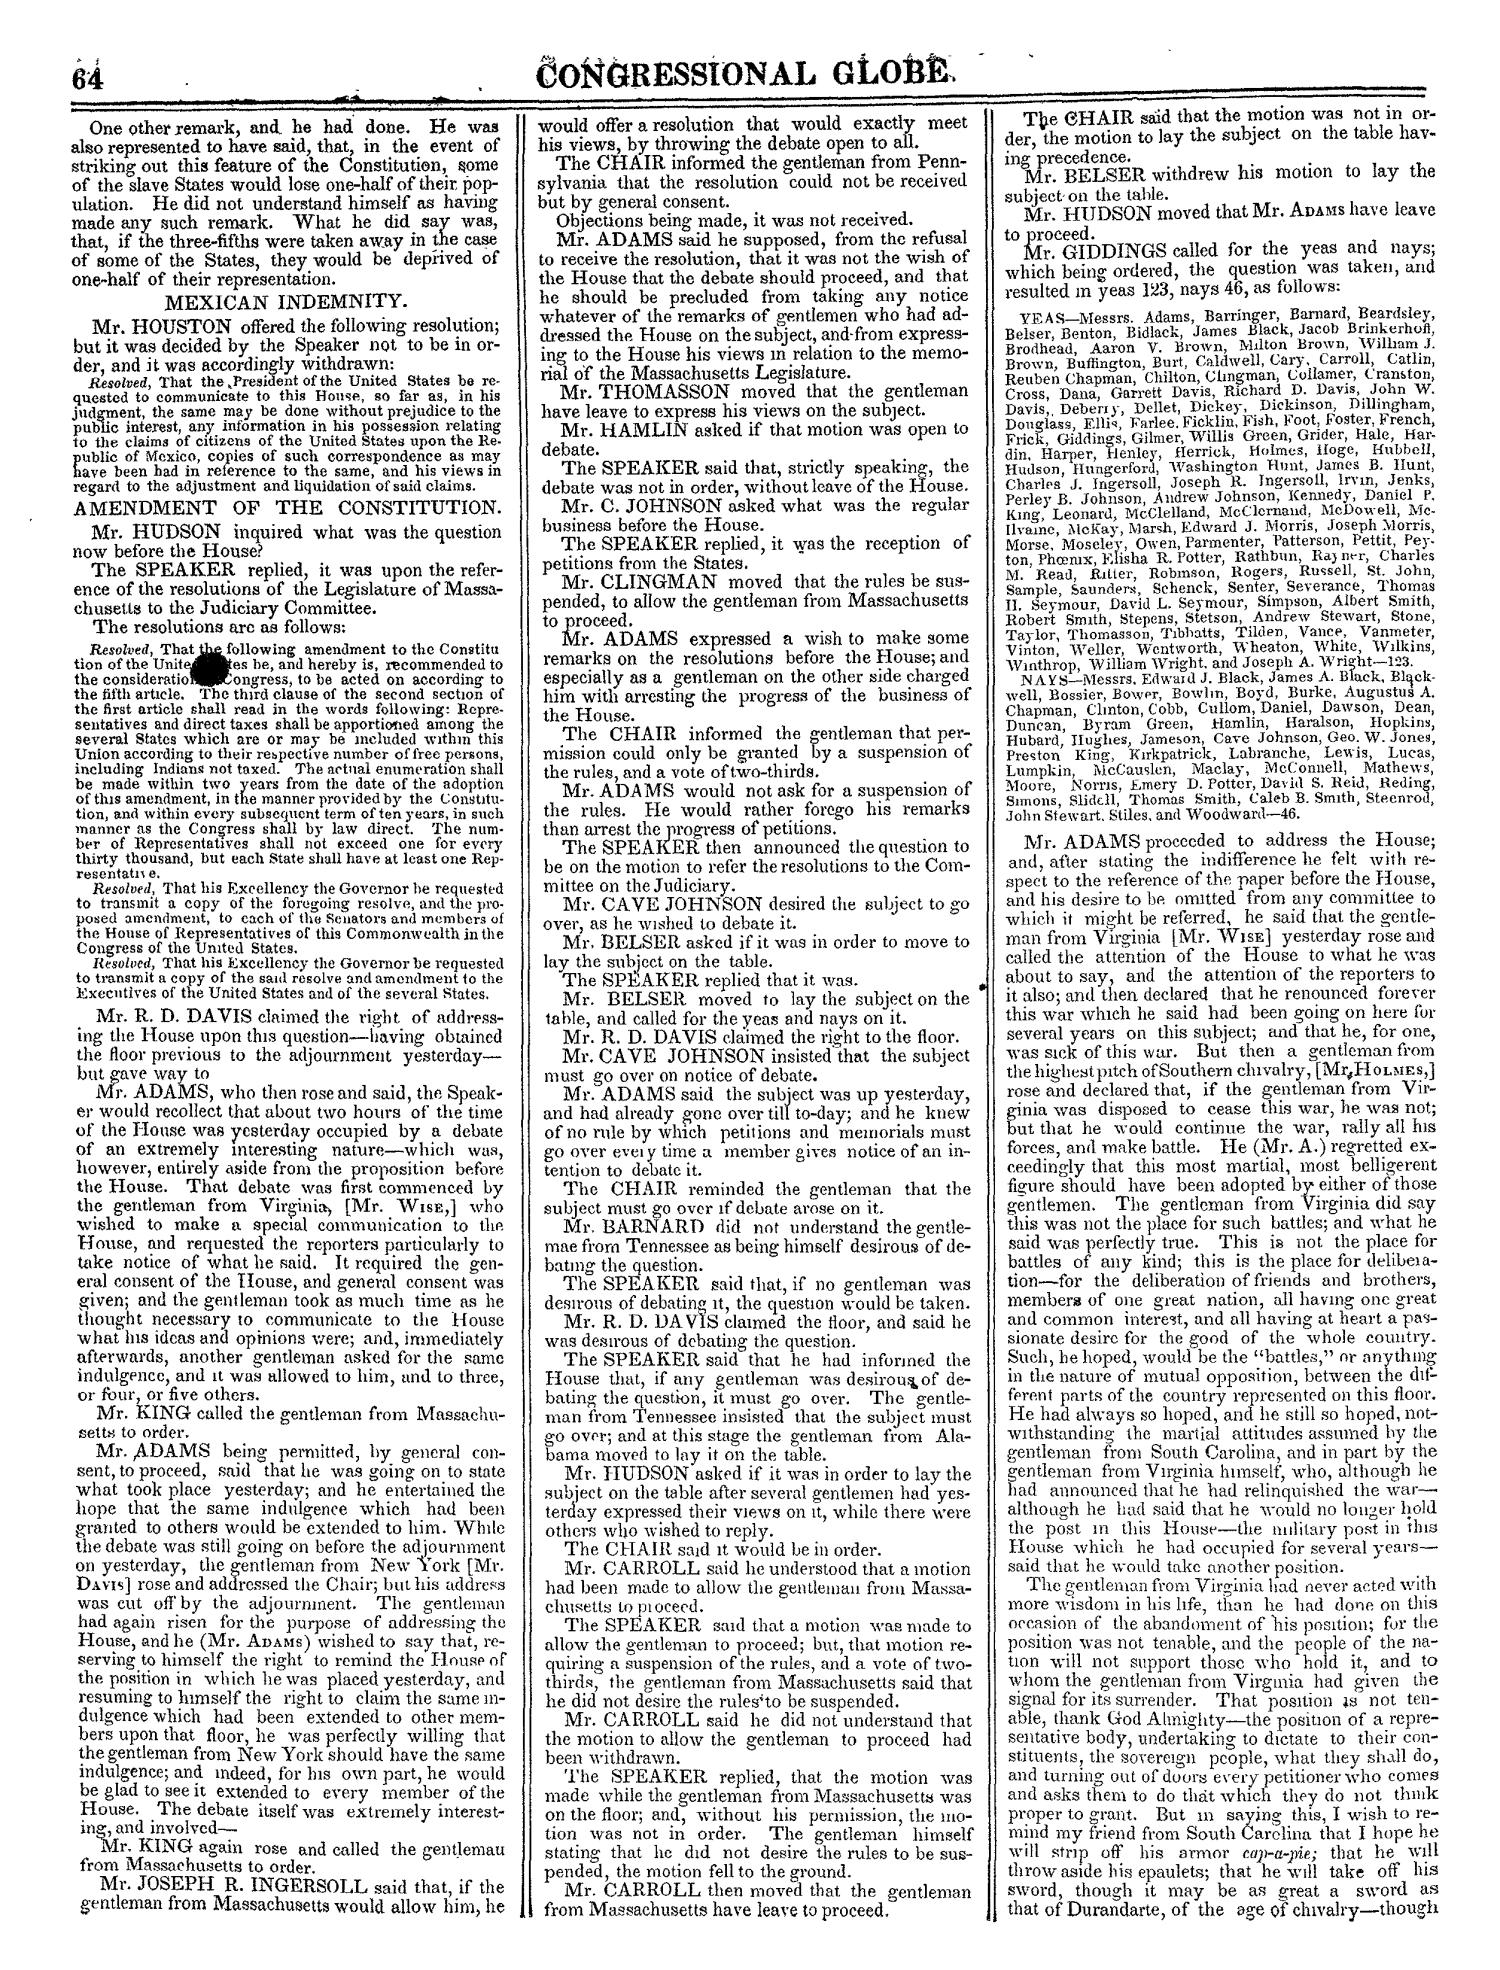 The Congressional Globe, Volume 13, Part 1: Twenty-Eighth Congress, First Session                                                                                                      64